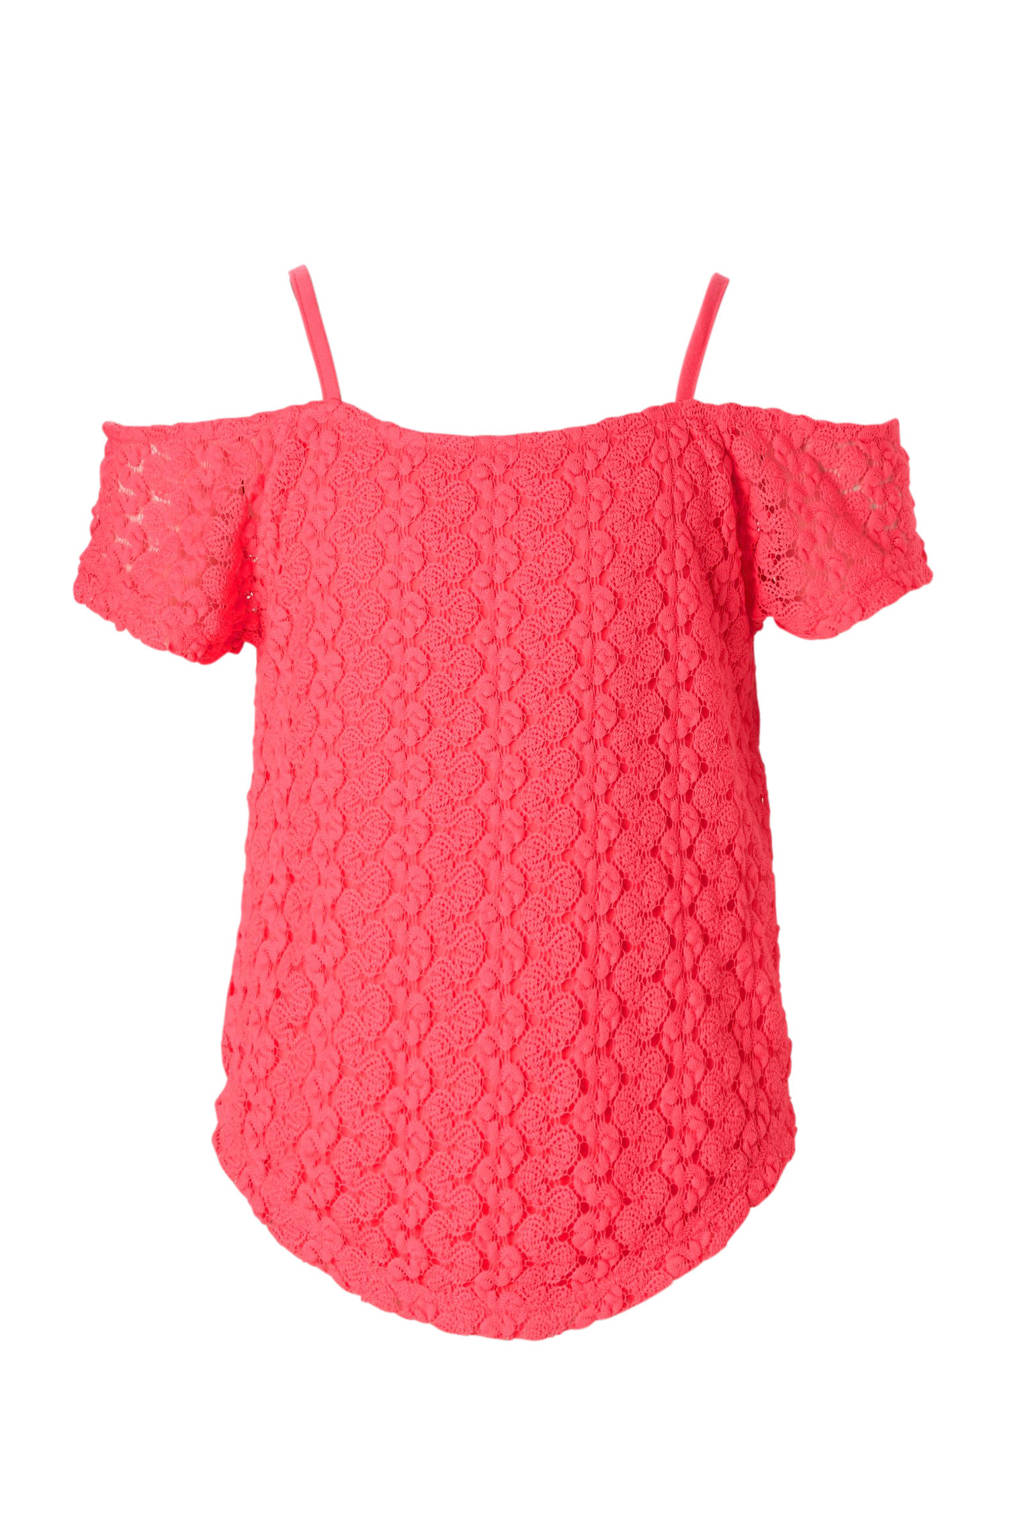 C&A Here & There kanten open shoulder top roze, Roze